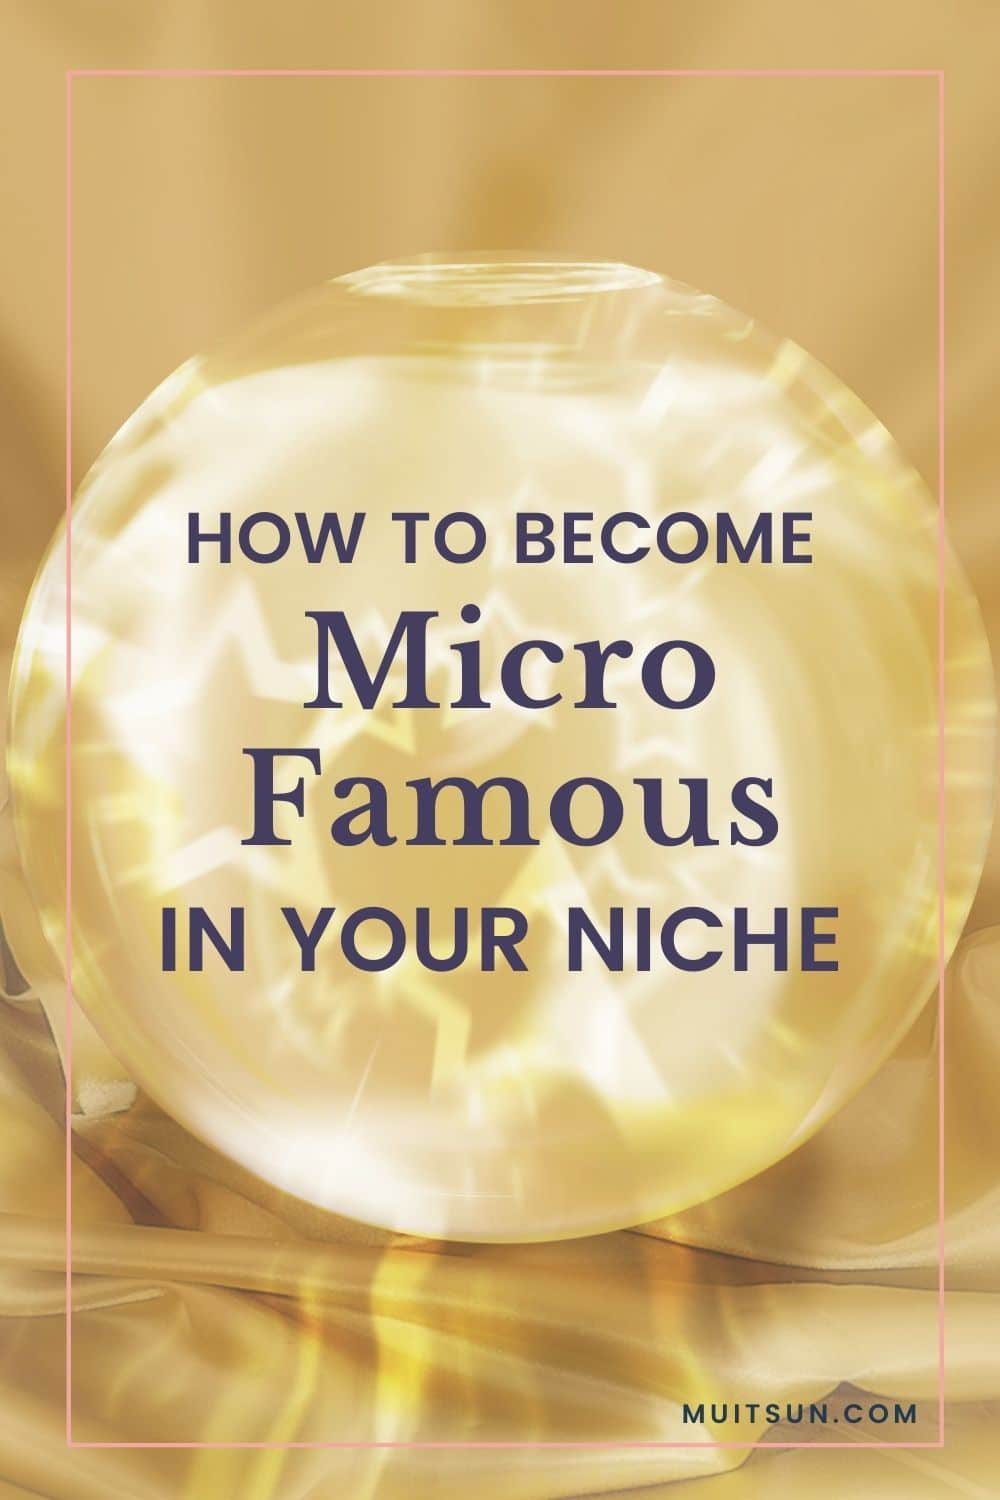 How to Become Micro-Famous In Your Niche